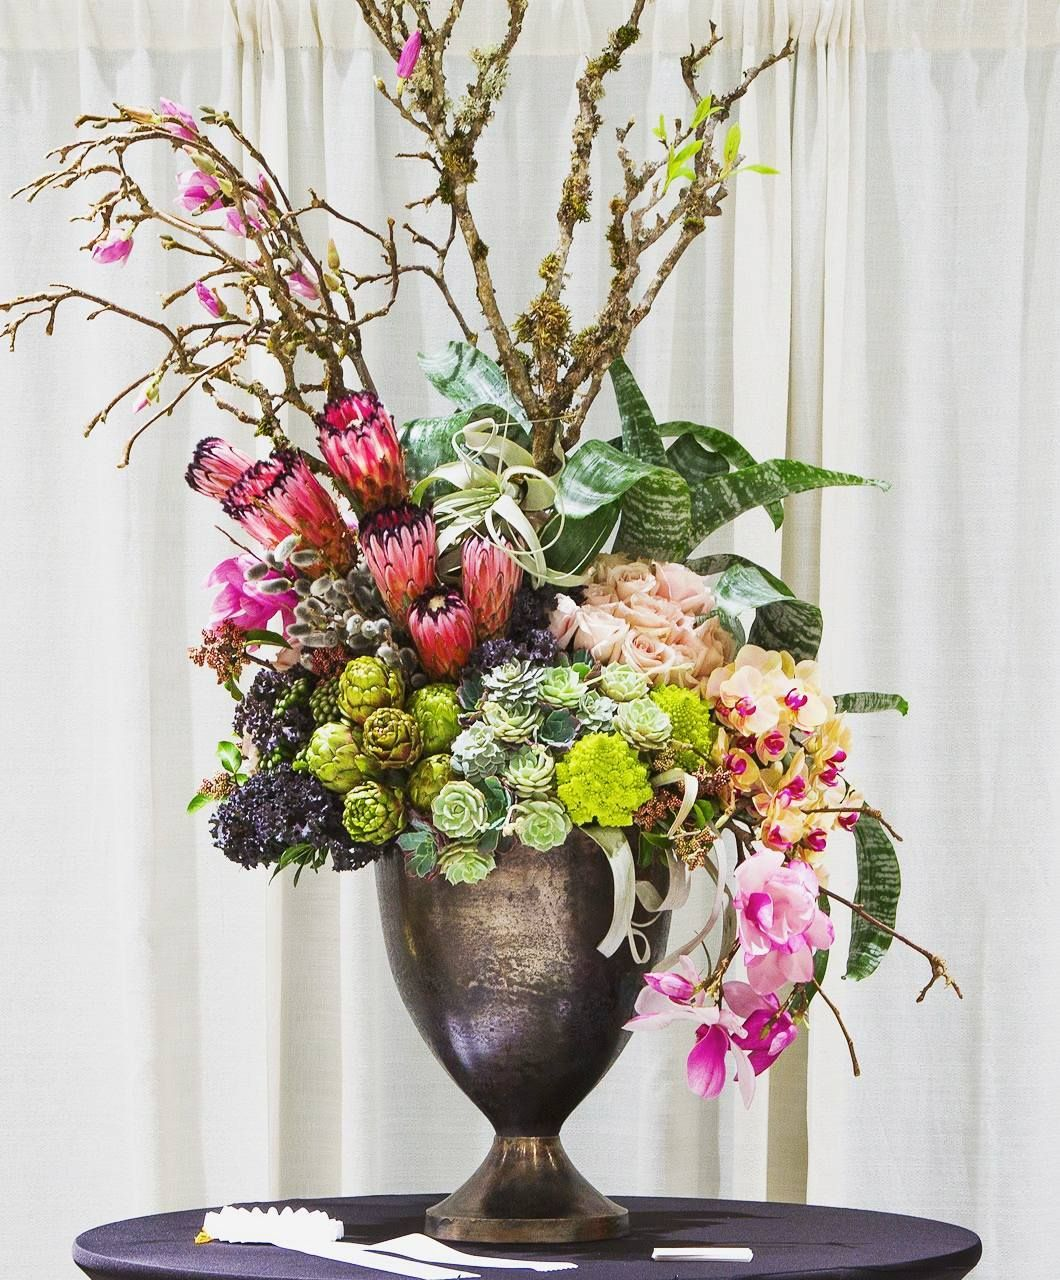 Succulents Artichokes & Airplants oh my! This striking